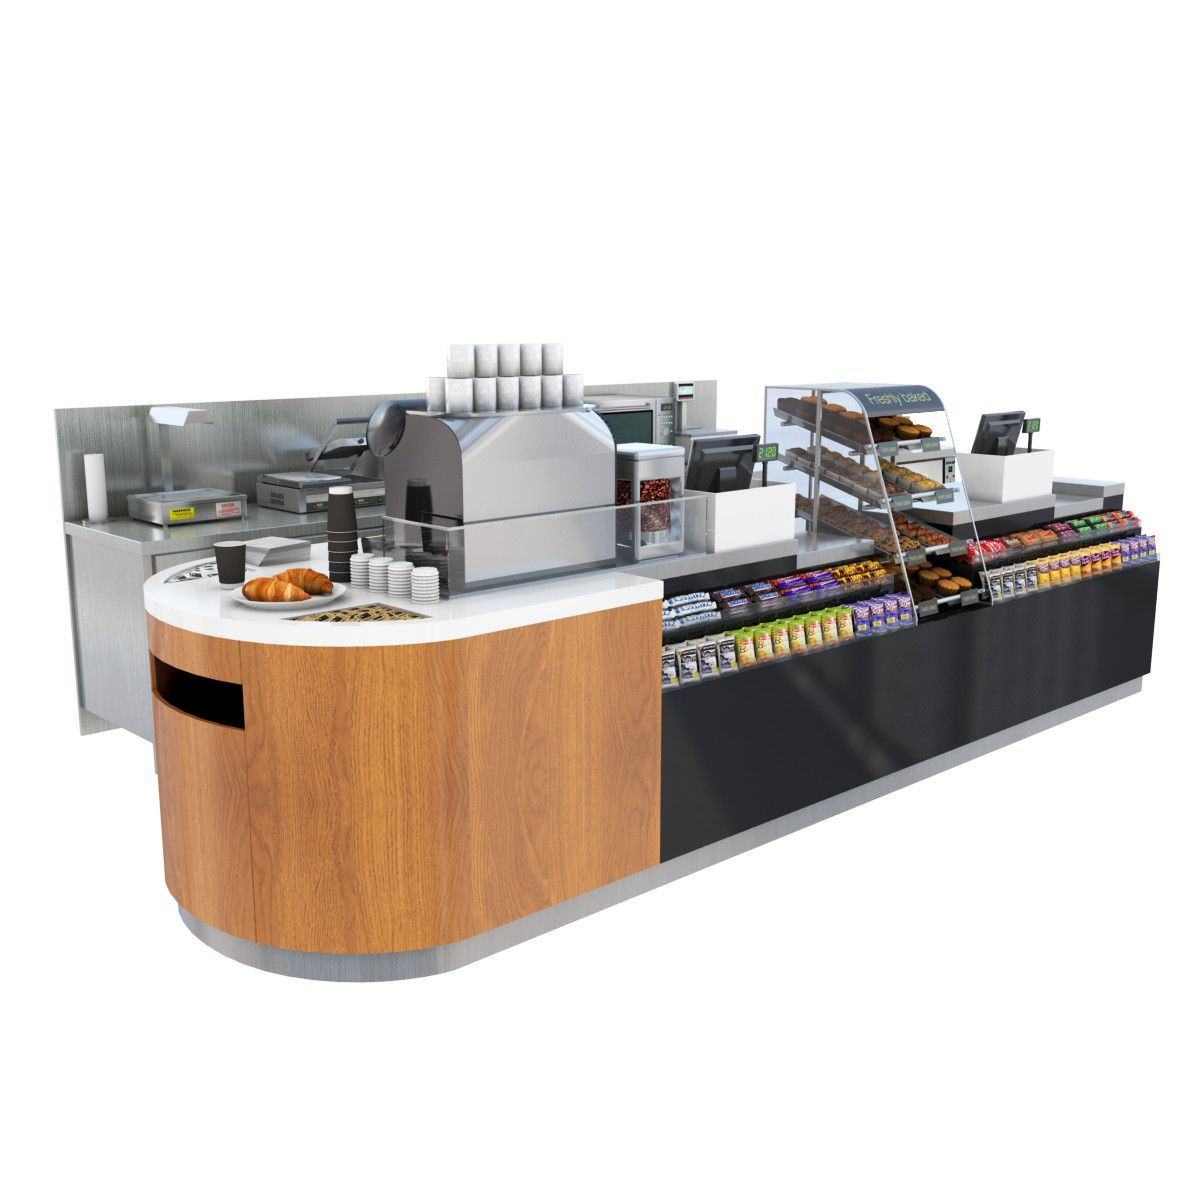 3D Model Cafe Shop Counter 3D Model